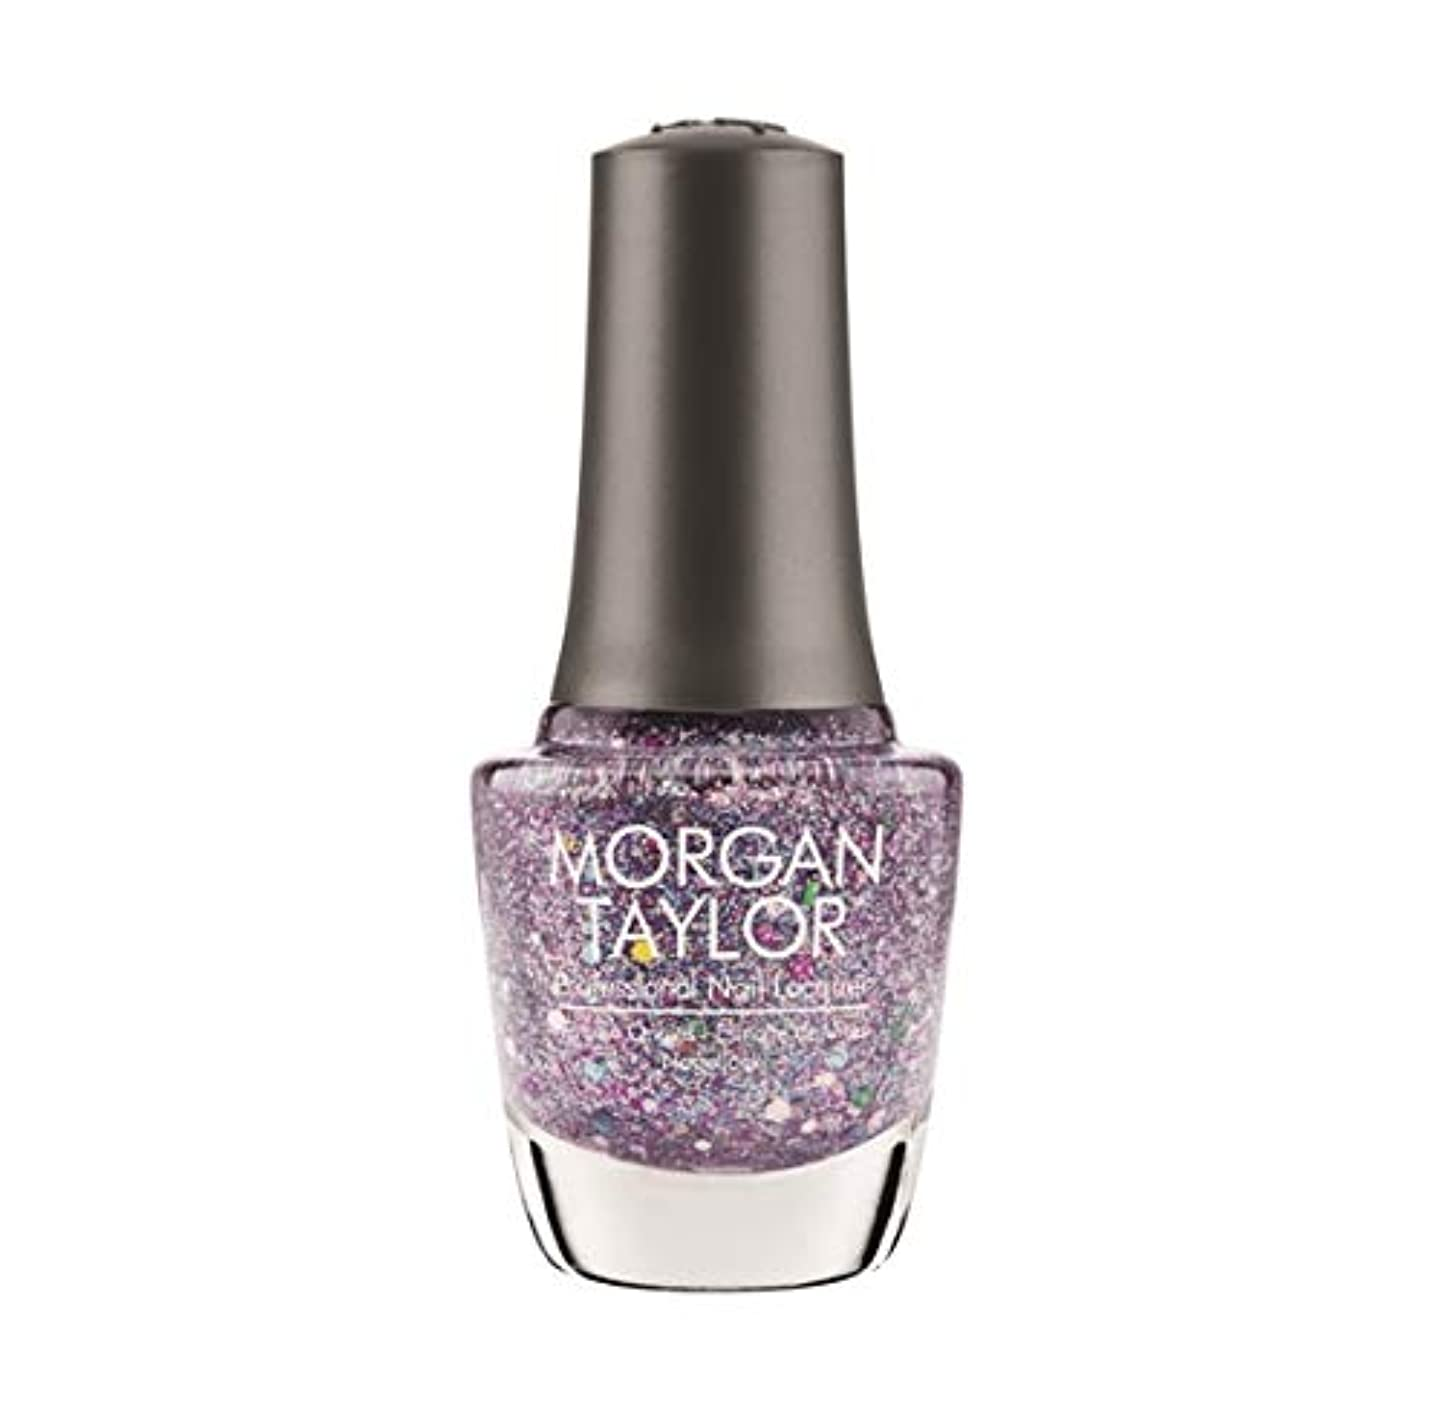 説明的荒涼とした恥Morgan Taylor Nail Lacquer - Rocketman Collection - Bedazzle Me - 15ml / 0.5oz